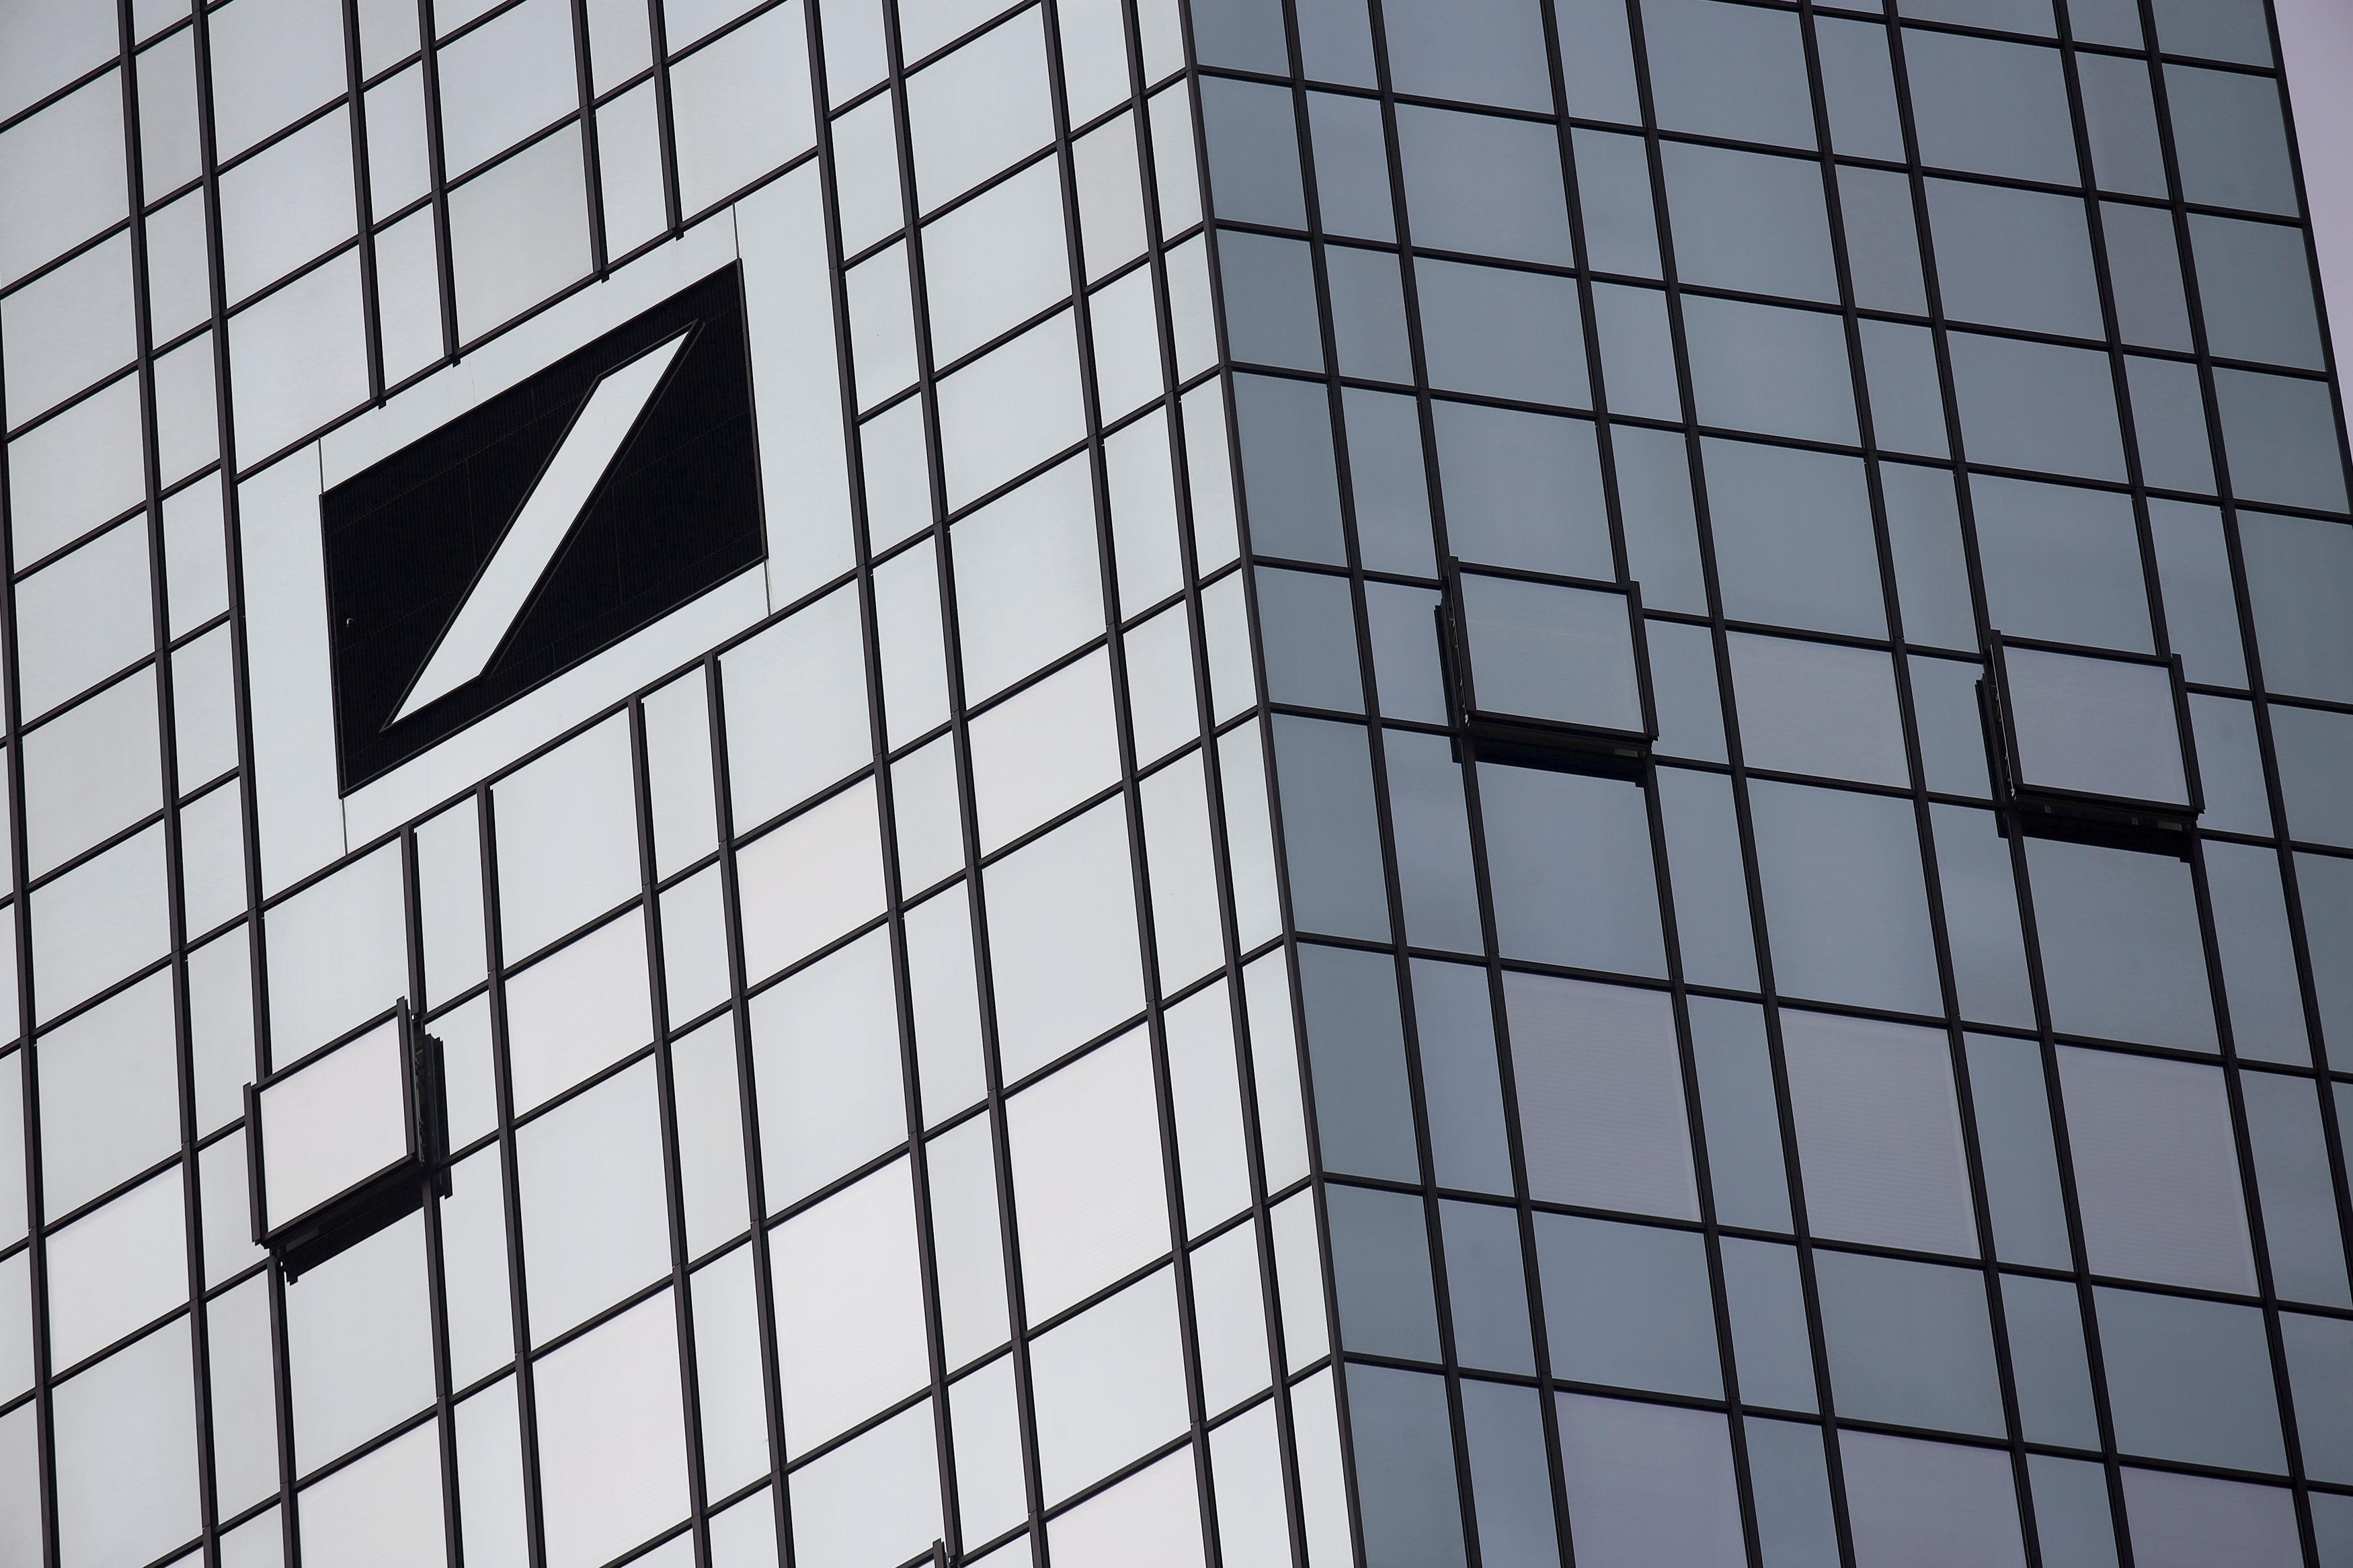 After Deutsche Bank cuts, where will the growth be?